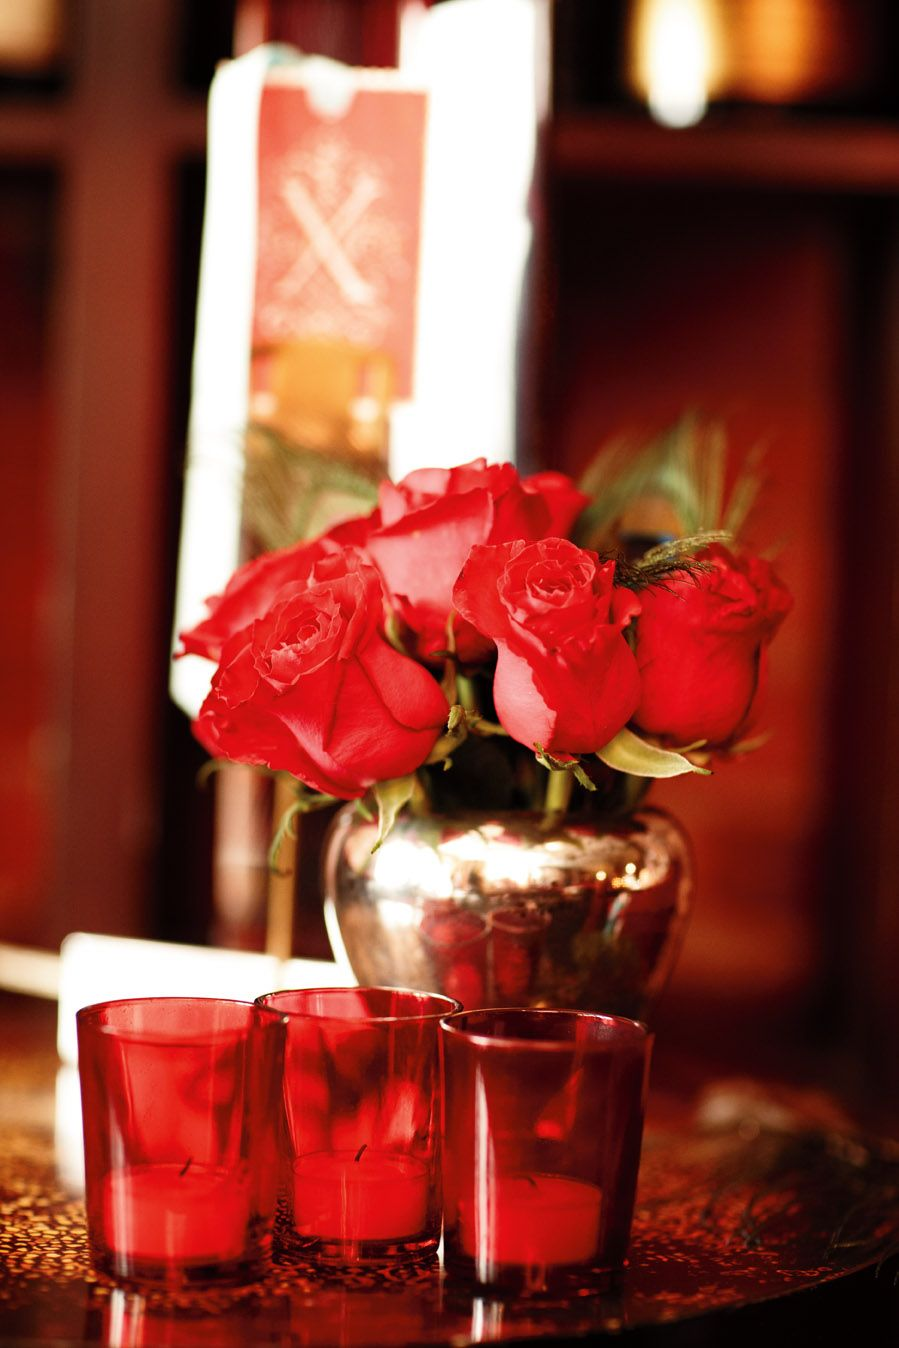 Put on your #rose-tinted #glasses and make a toast to #love. #MadAboutRed